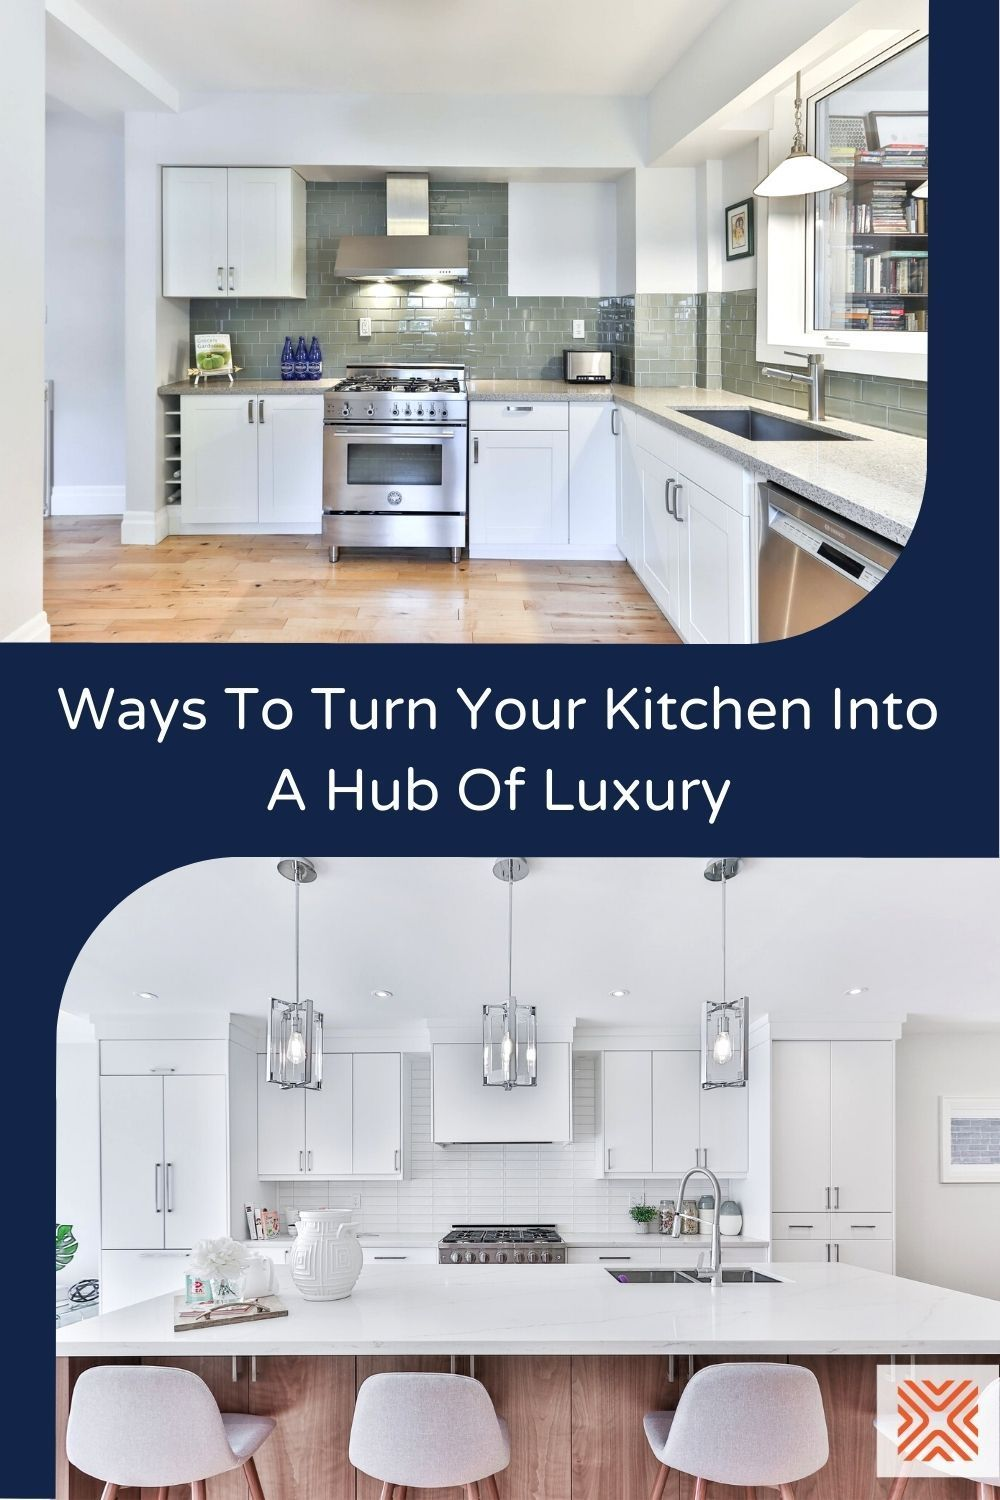 Not in love with your kitchen design? If you don't mind spending a bit more on home renovations, then you need to check our list of luxury kitchen ideas and turn your kitchen into a hub of luxury